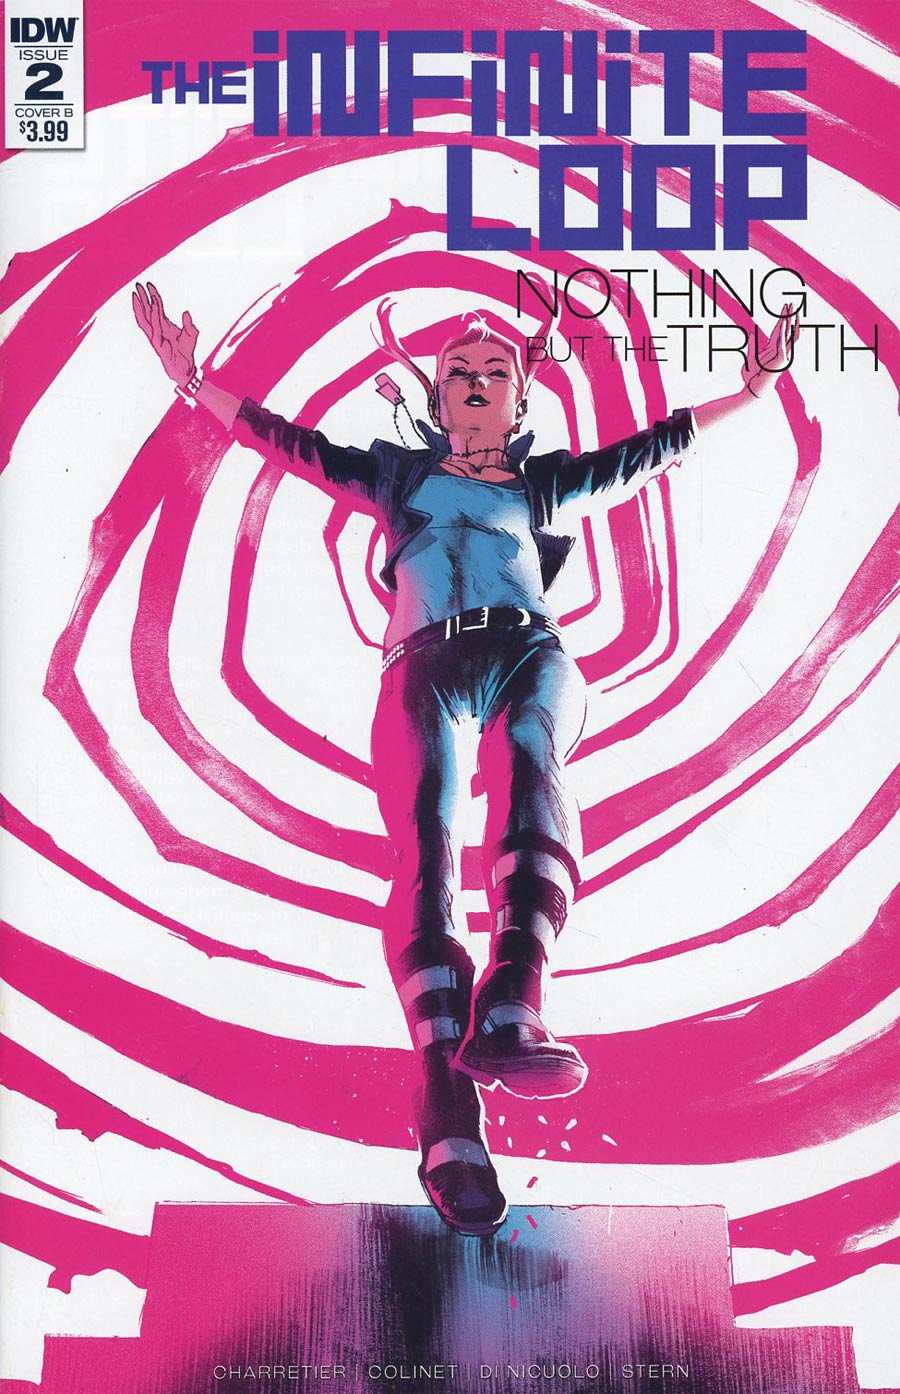 Infinite Loop Nothing But The Truth #2 Cover B Variant Rafael Albuquerque Cover